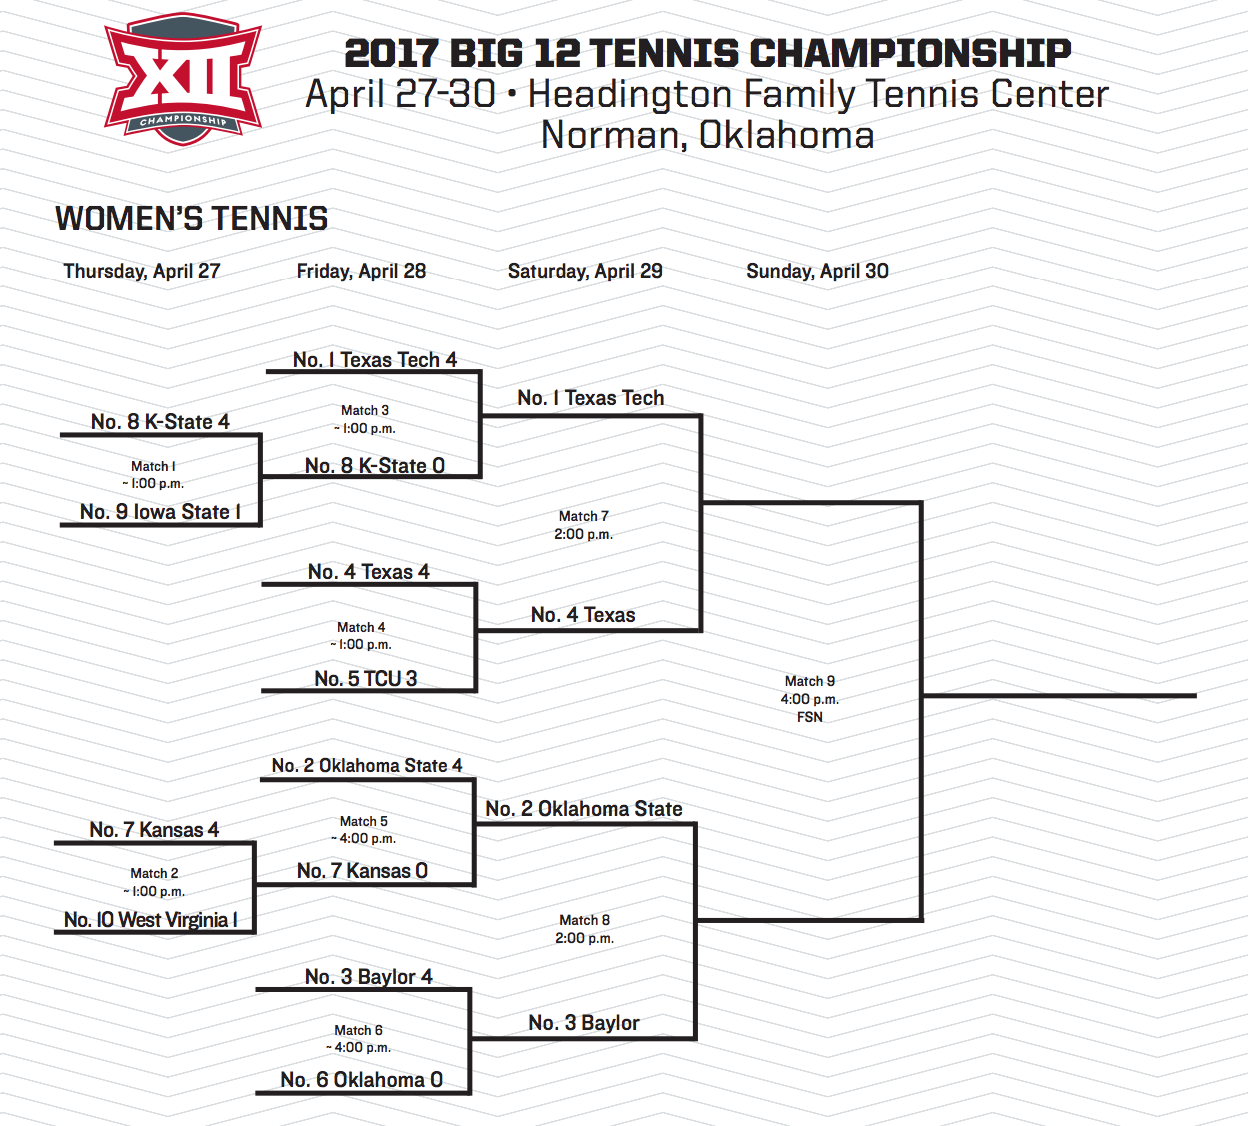 WomensSemisBig12Bracket